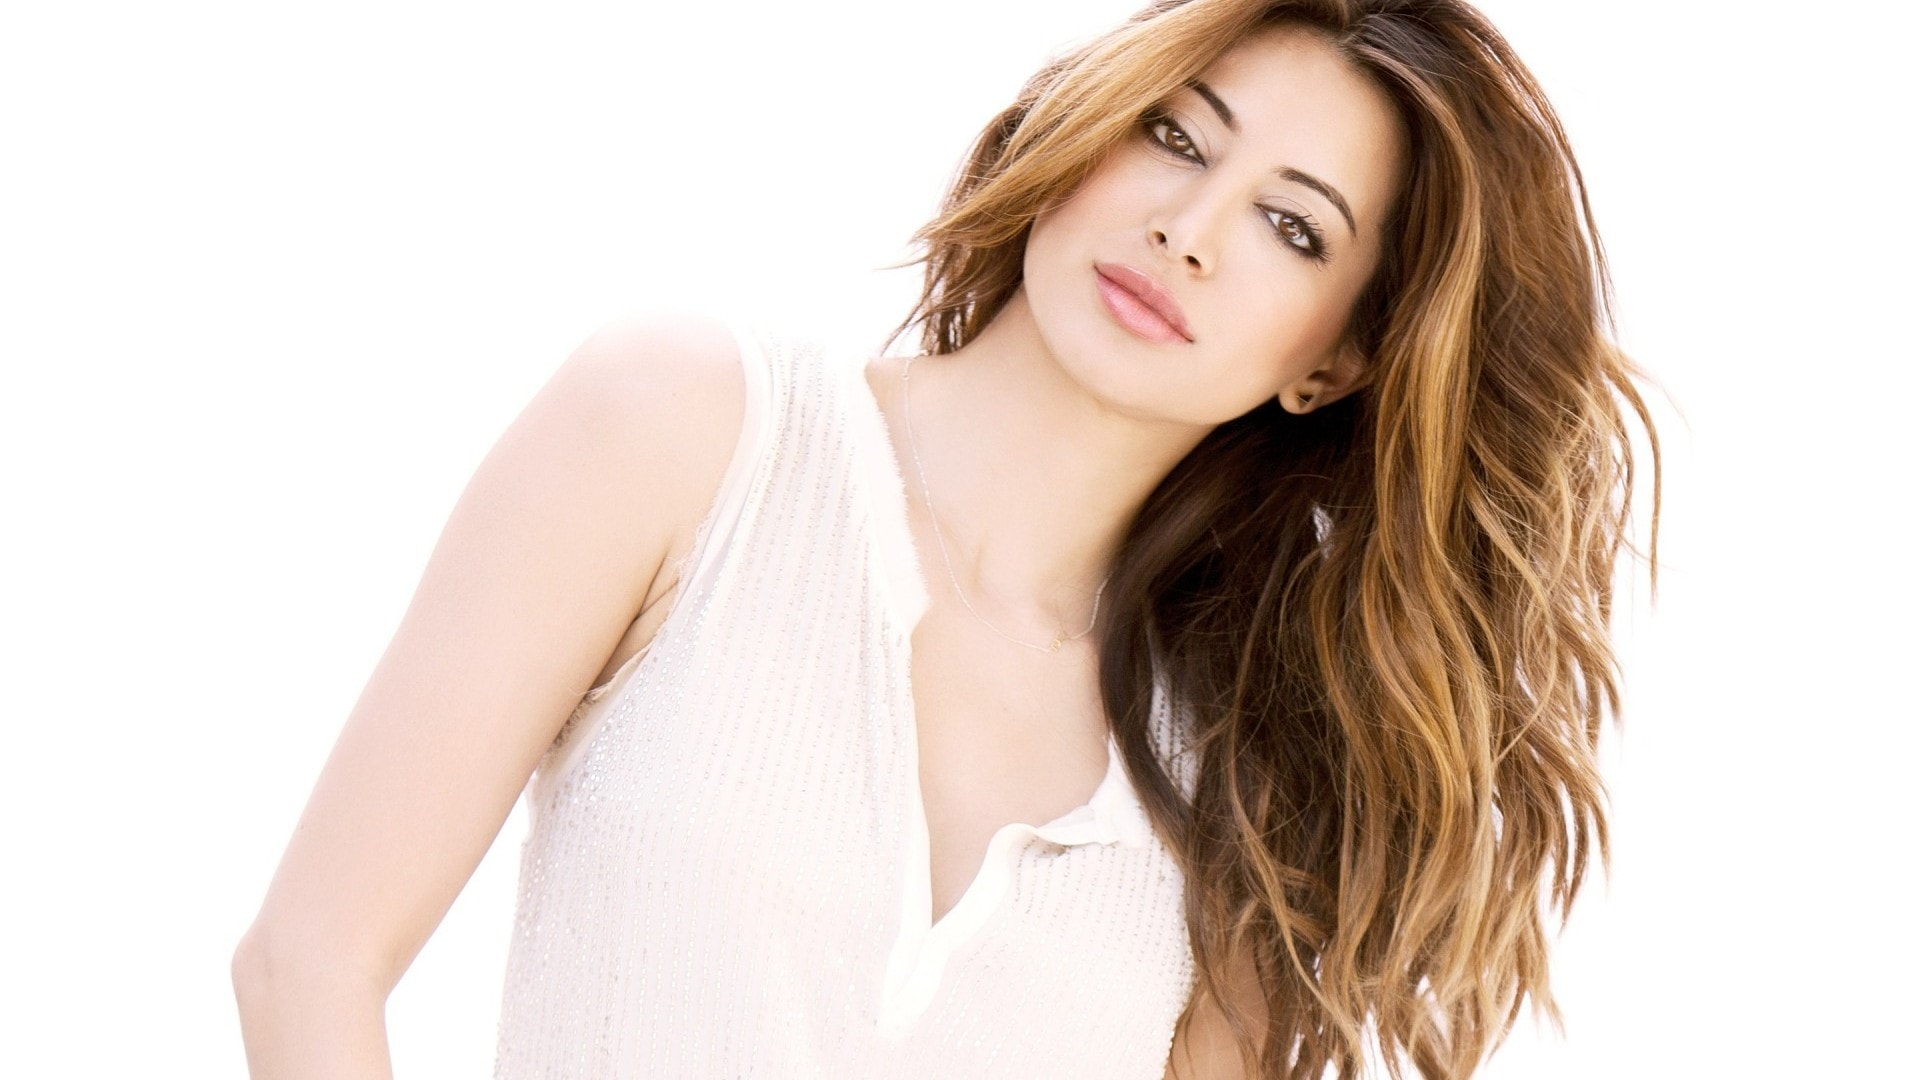 Noureen Dewulf widescreen wallpapers